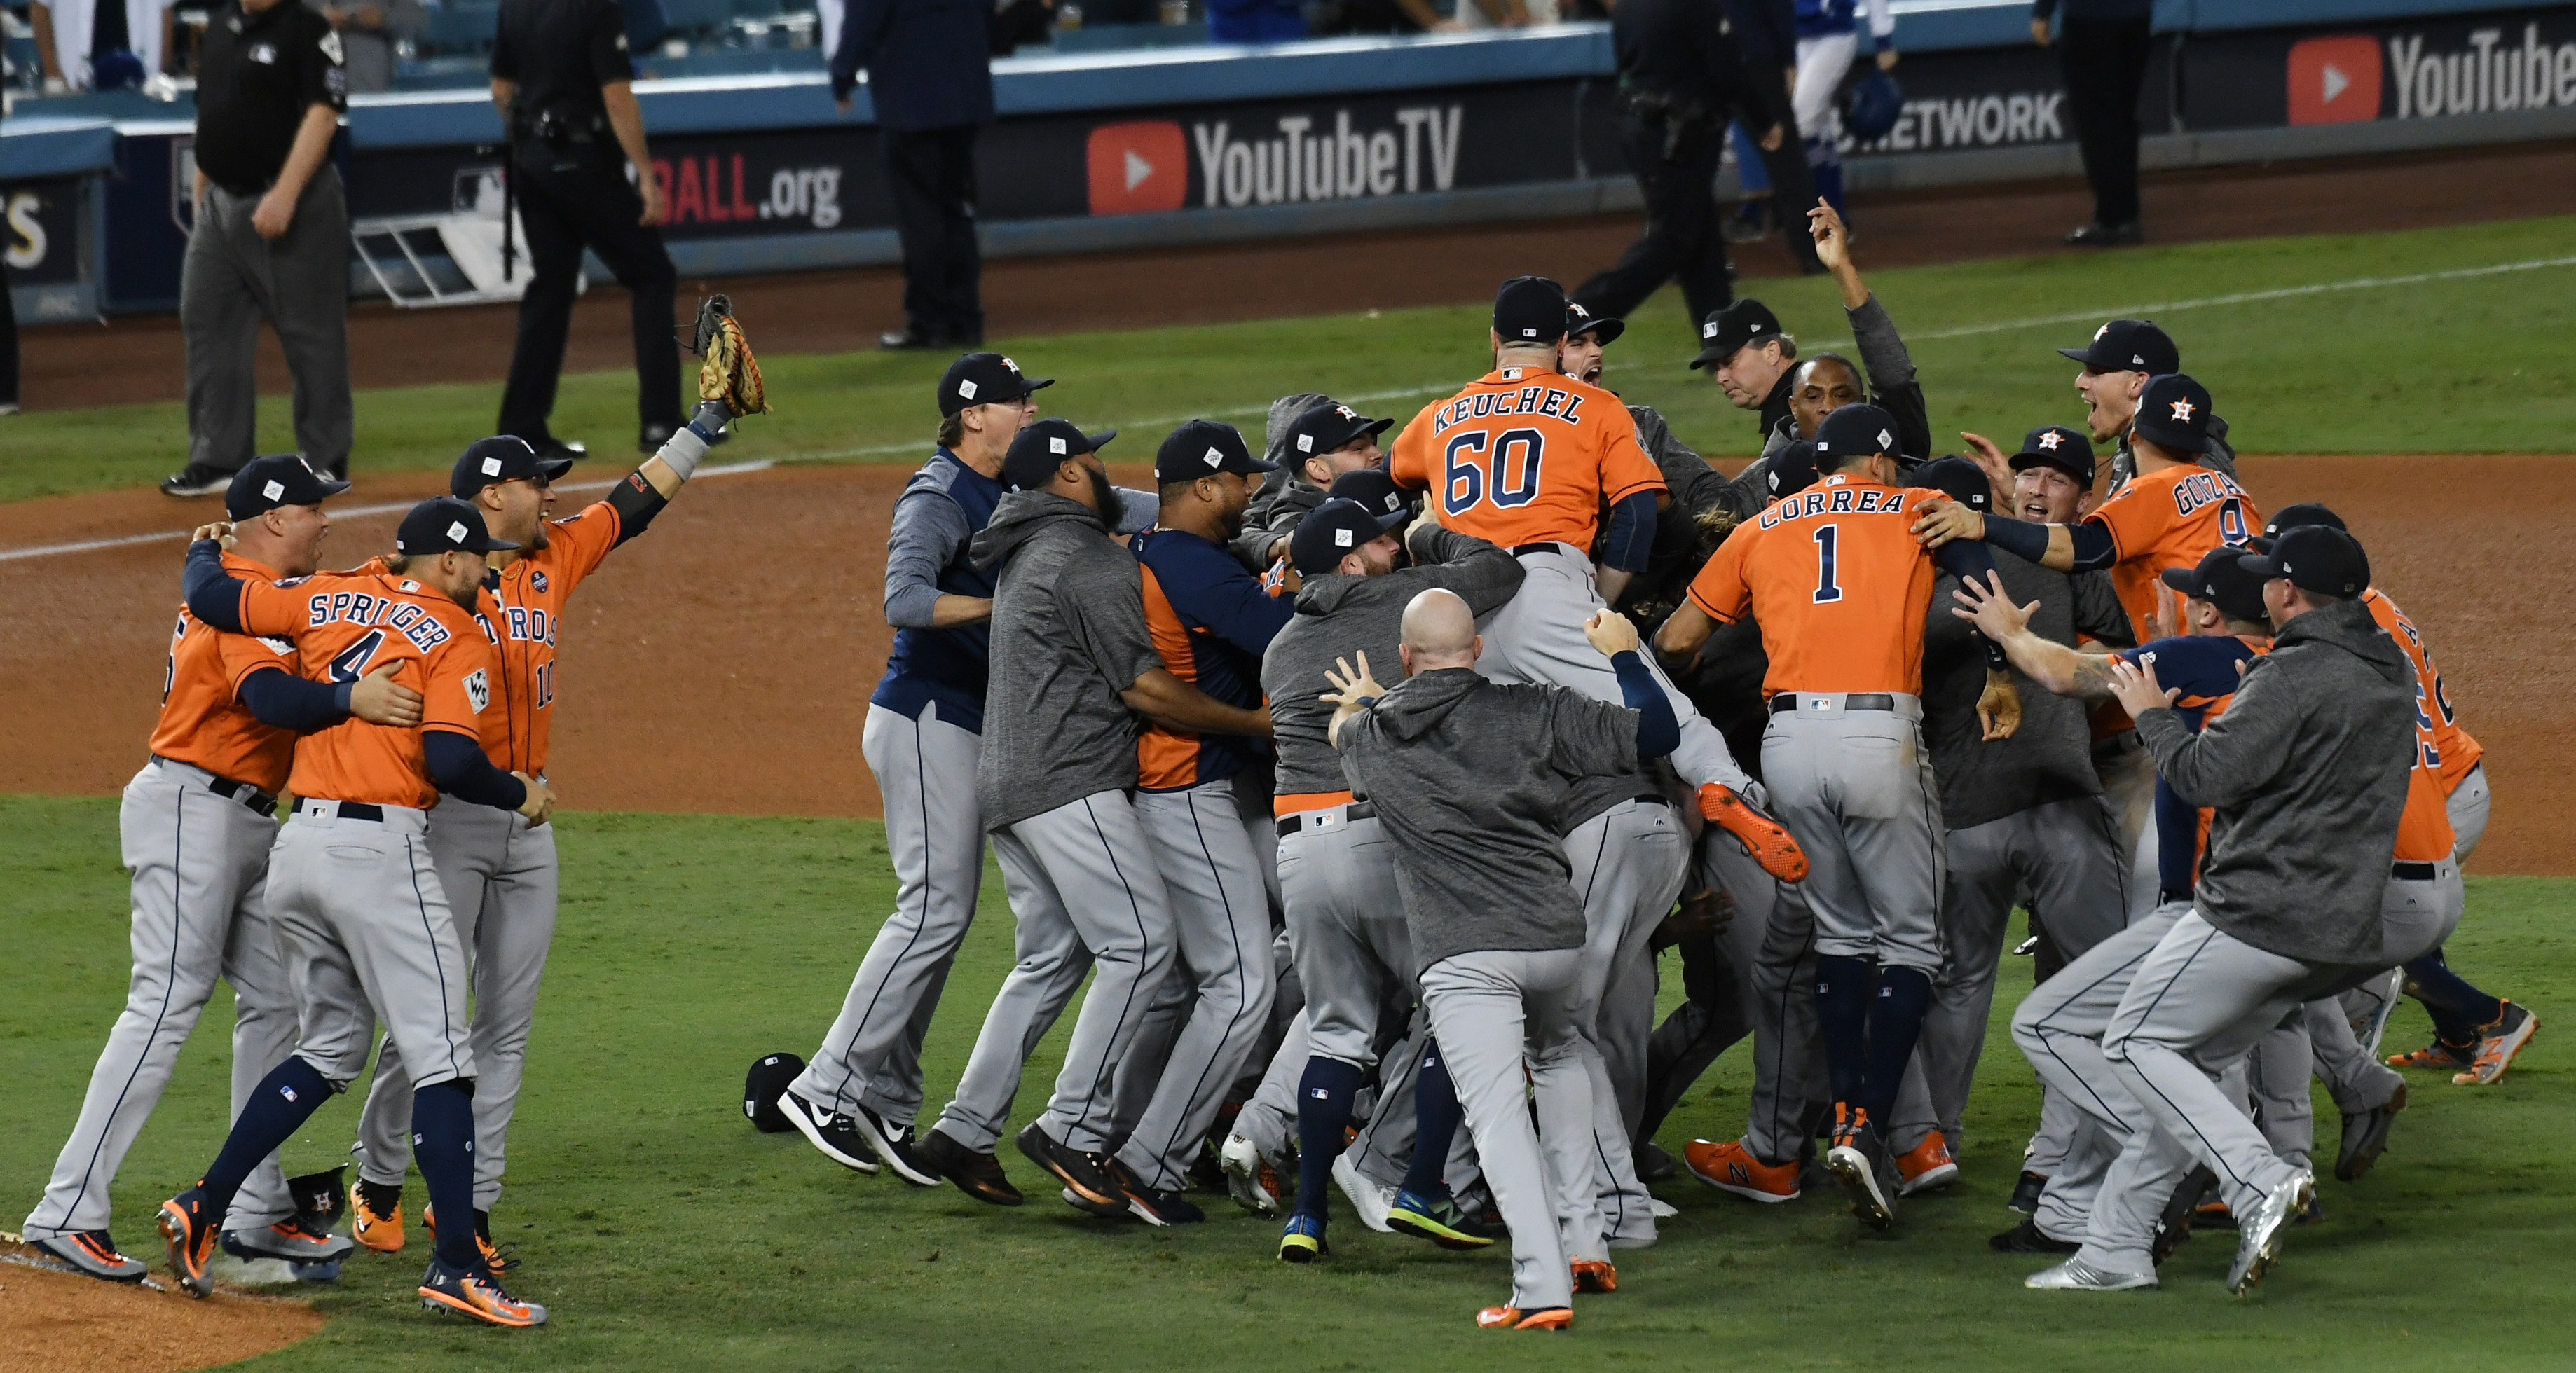 Nov 1, 2017; Los Angeles, CA, USA; The Houston Astros celebrate defeating the Los Angeles Dodgers in game seven to win the 2017 World Series at Dodger Stadium. Mandatory Credit: Richard Mackson-USA TODAY Sports